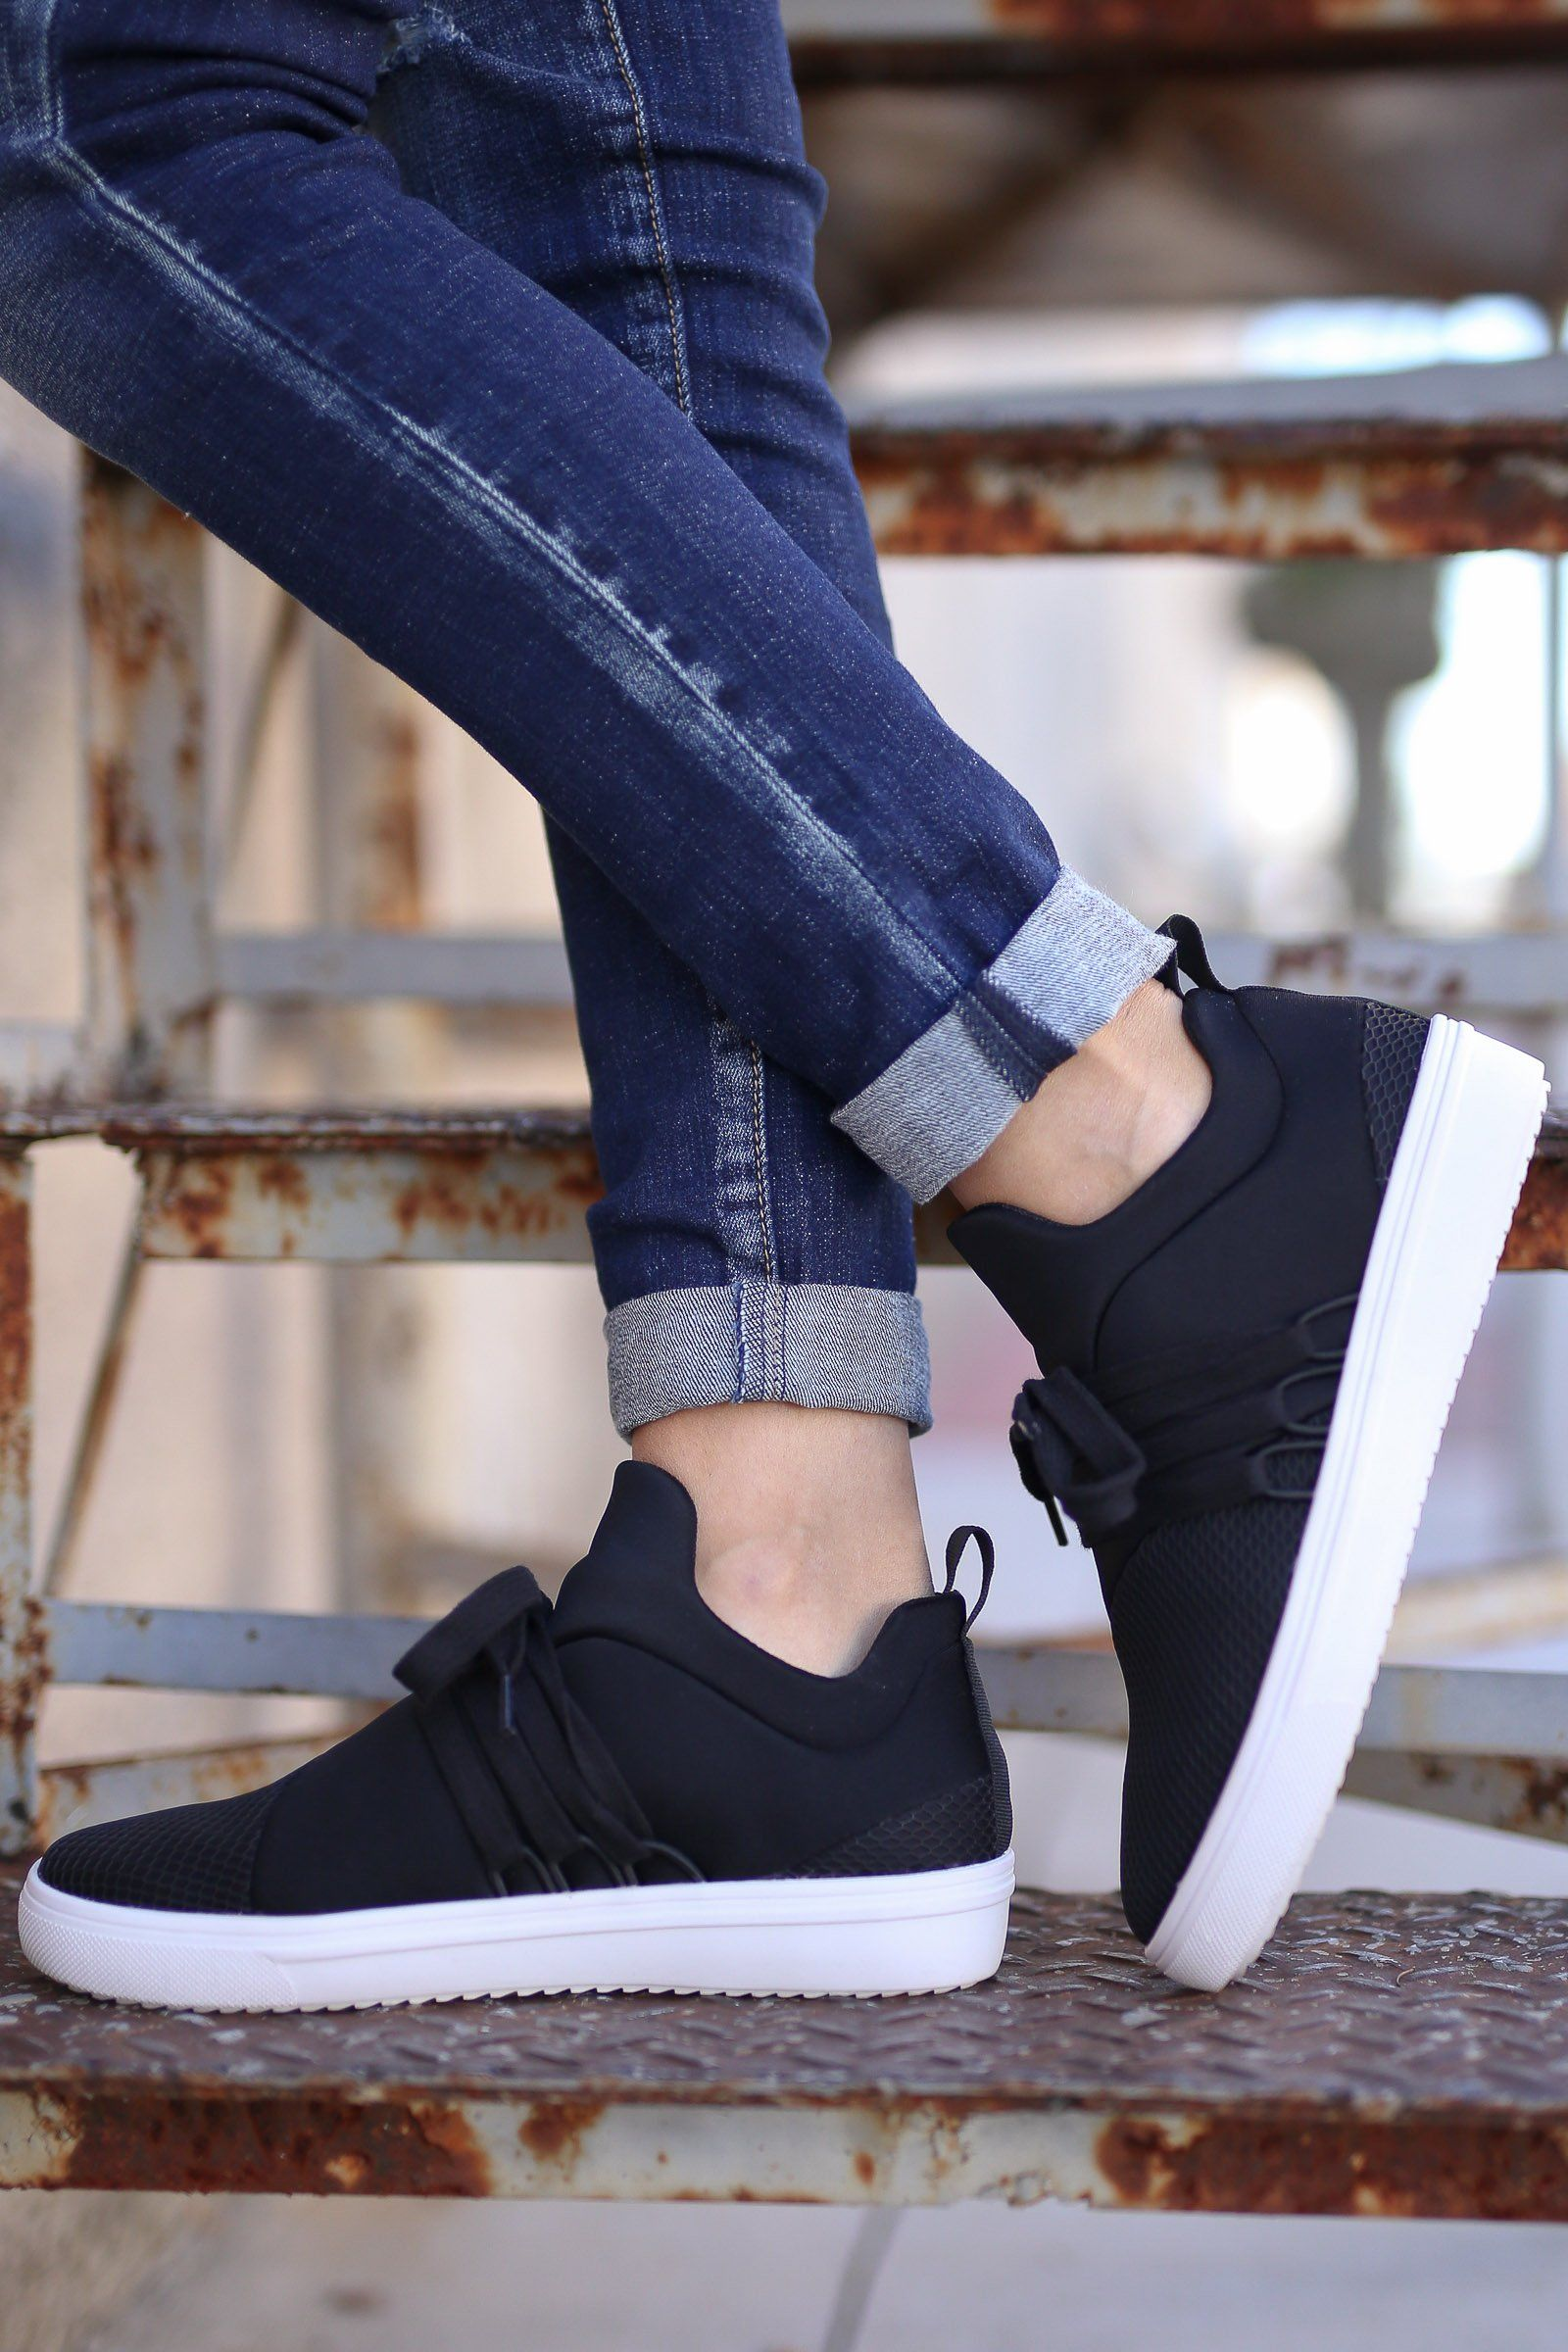 STEVE MADDEN Lancer Sneakers - Black in 2019  d0e95179ef2